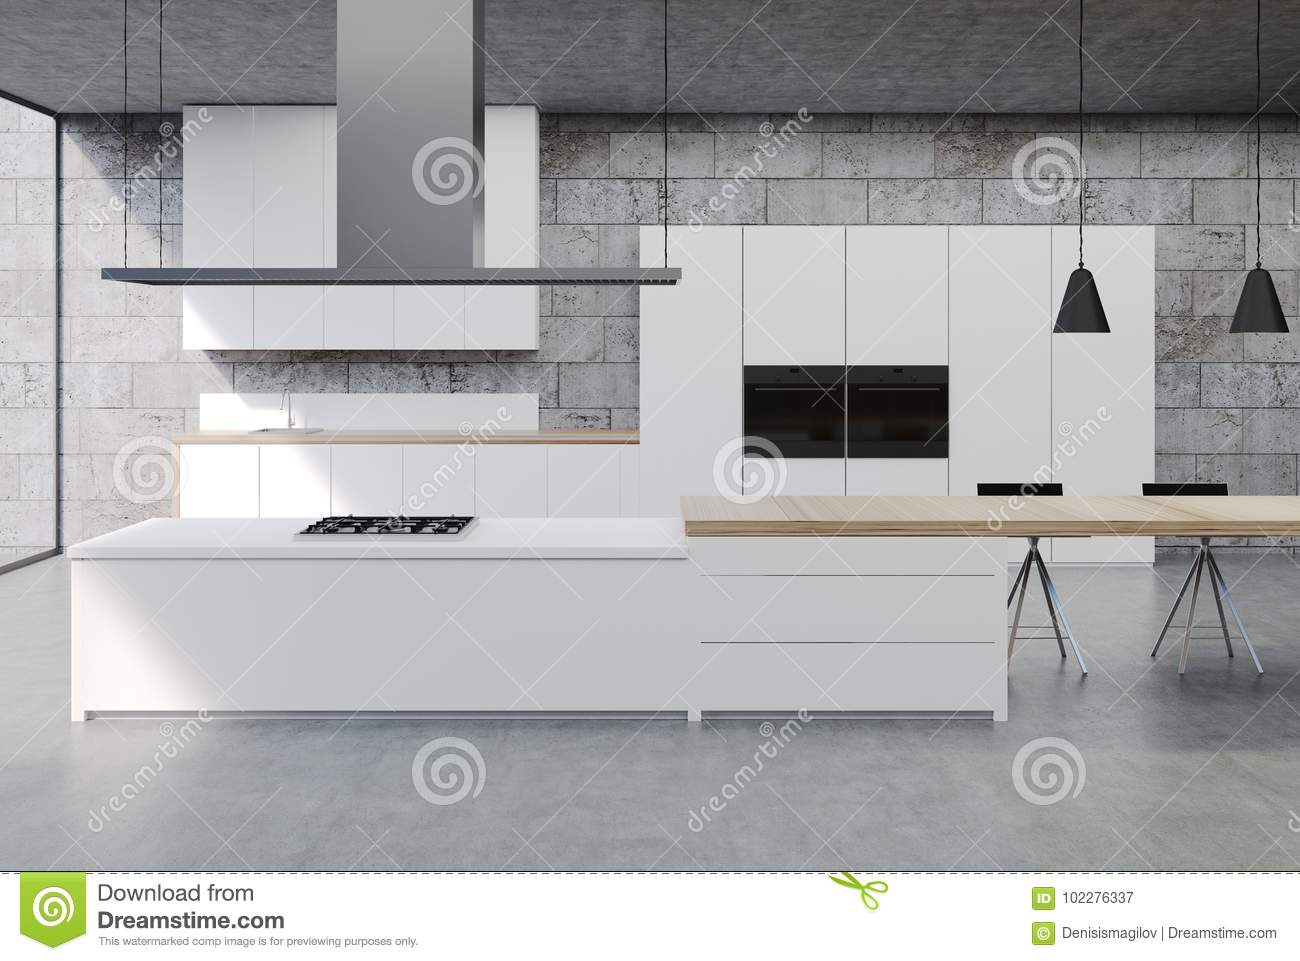 Black Tulip Dining Table, Concrete Kitchen Interior White Cabinets Stock Illustration Illustration Of Design Indoor 102276337